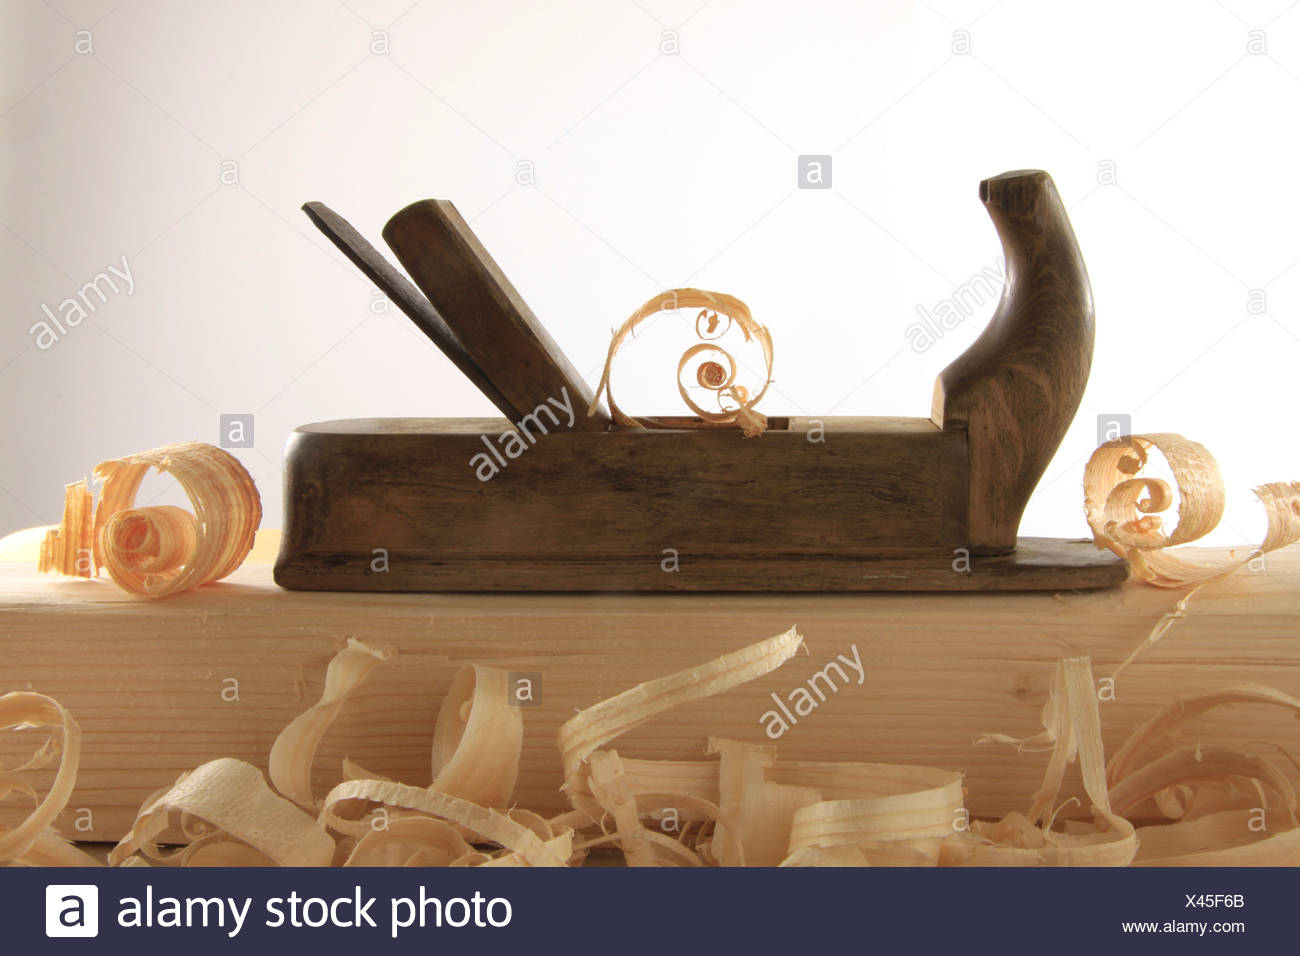 Antique plane with wood shavings Stock Photo